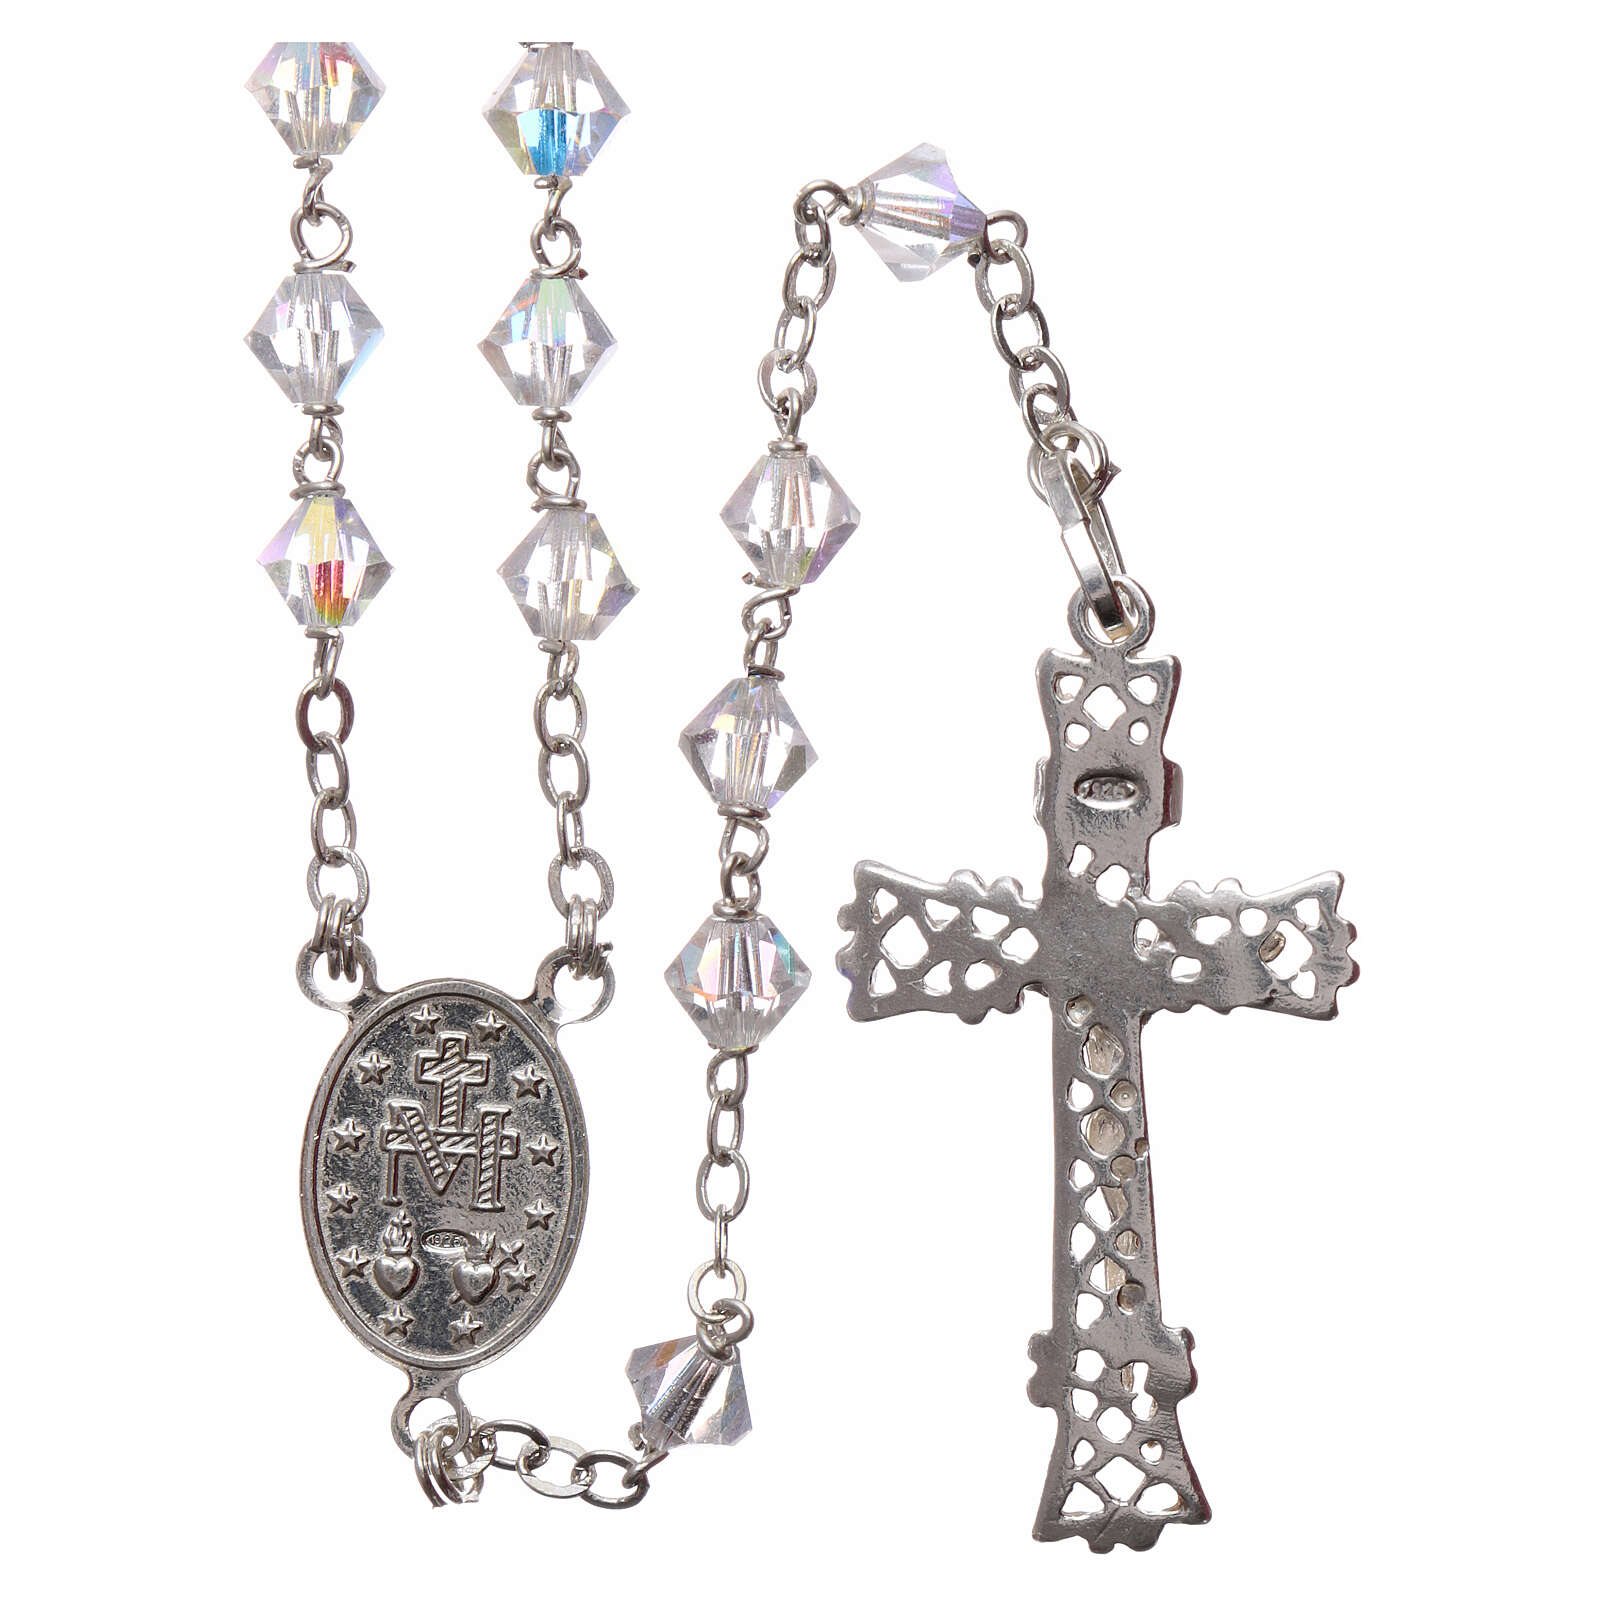 Silver rosary with iridescent Swarovski crystals 4